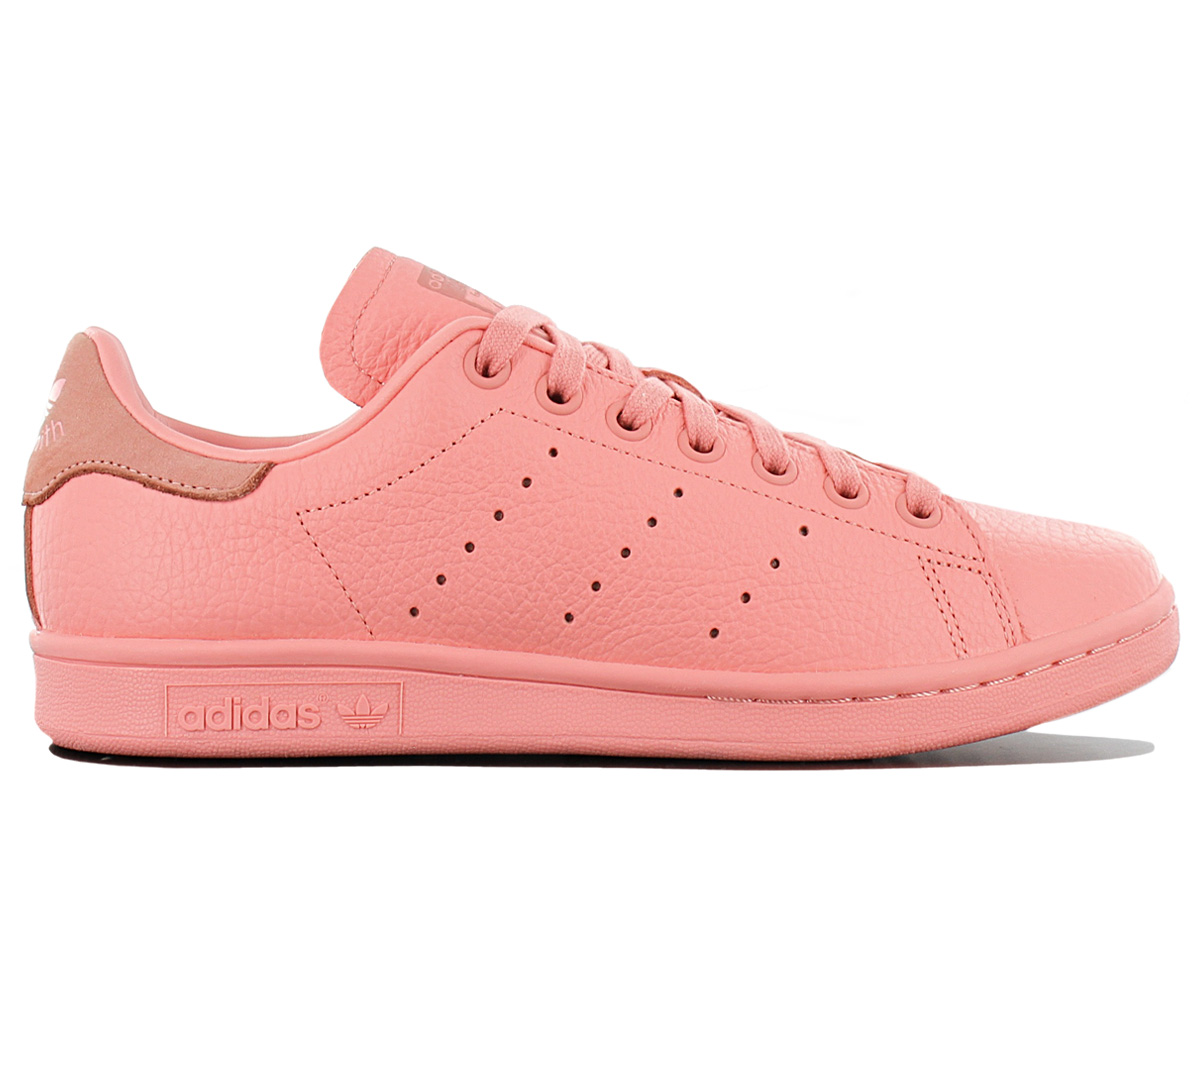 Adidas Originals Stan Smith Rose Damen Sneaker Low